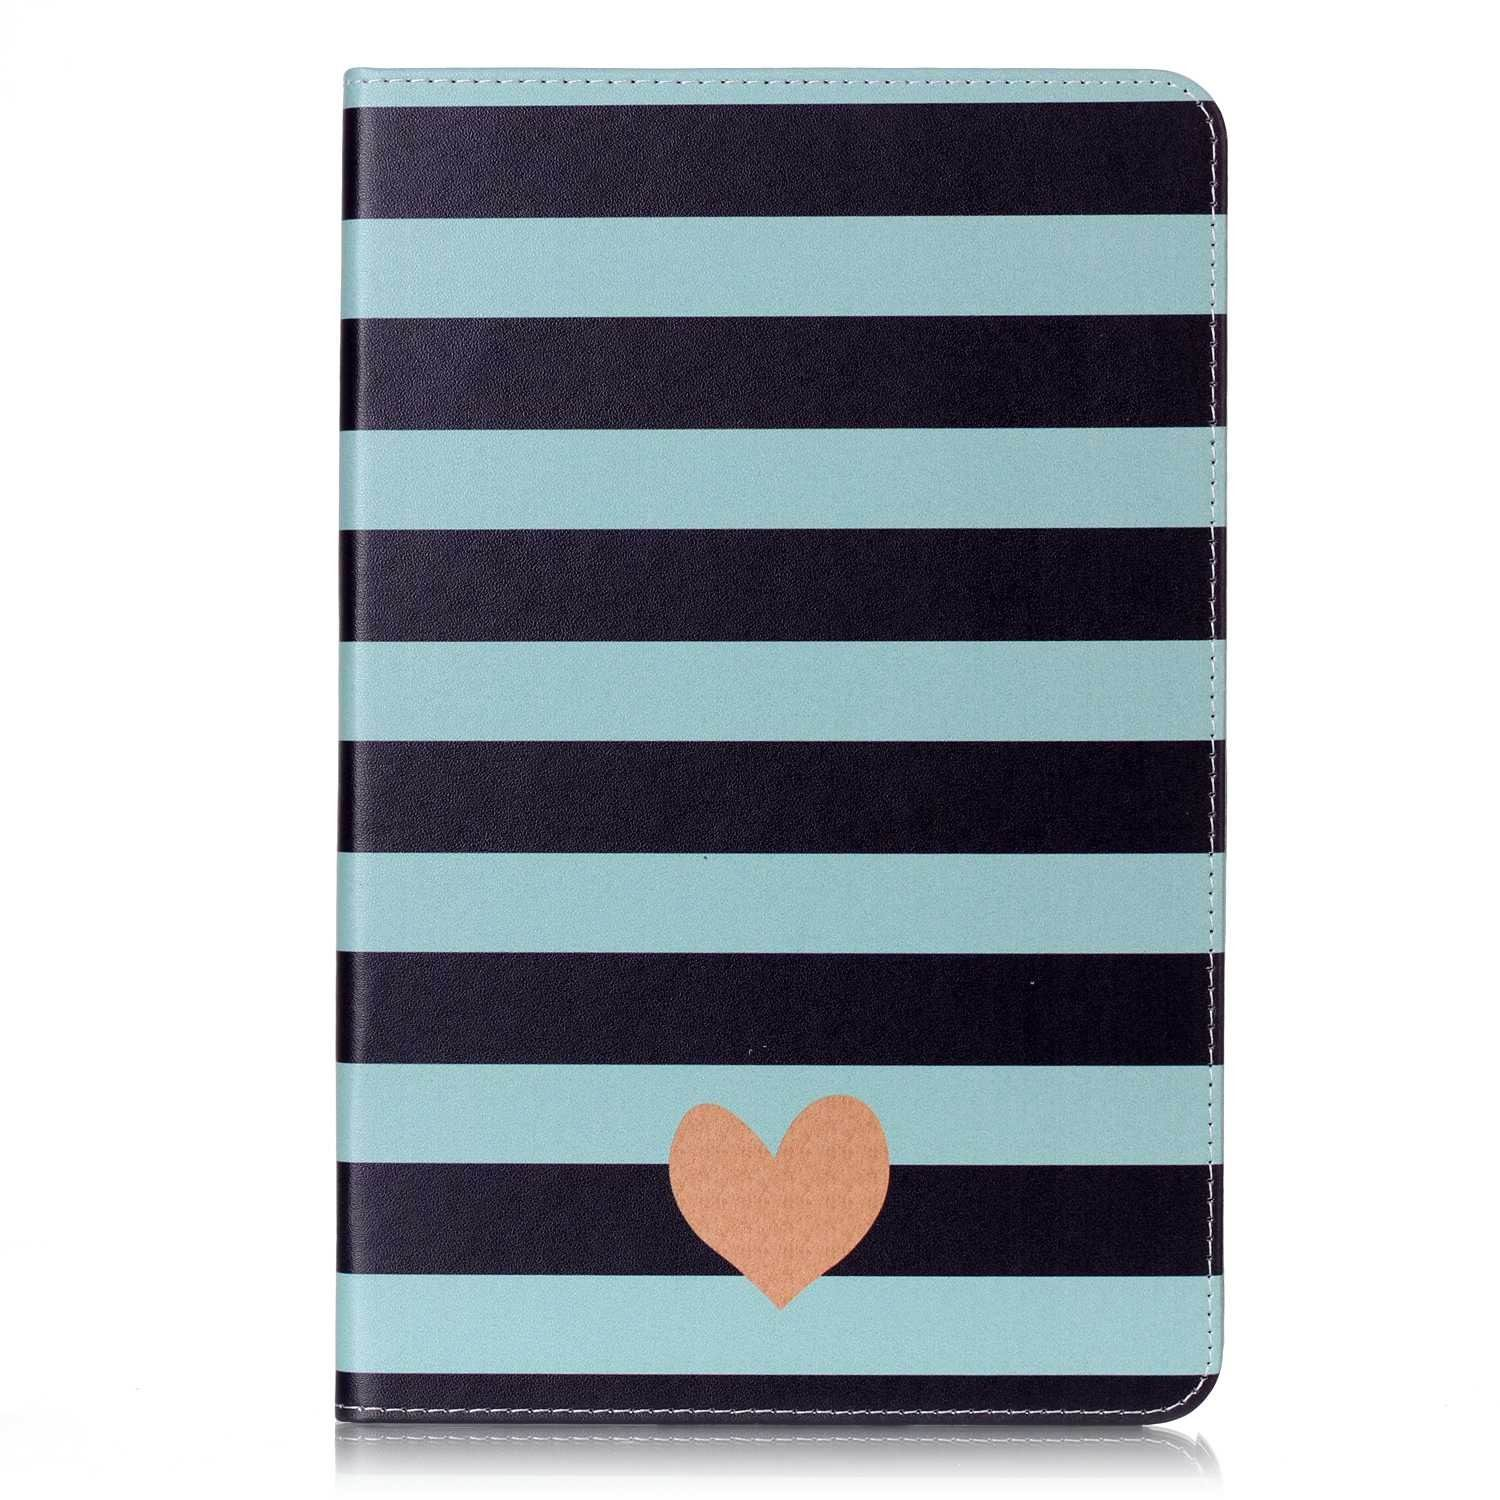 galaxy tab a 10 1 s pen 2016 case with a wide selection of images and 2 stand 11: